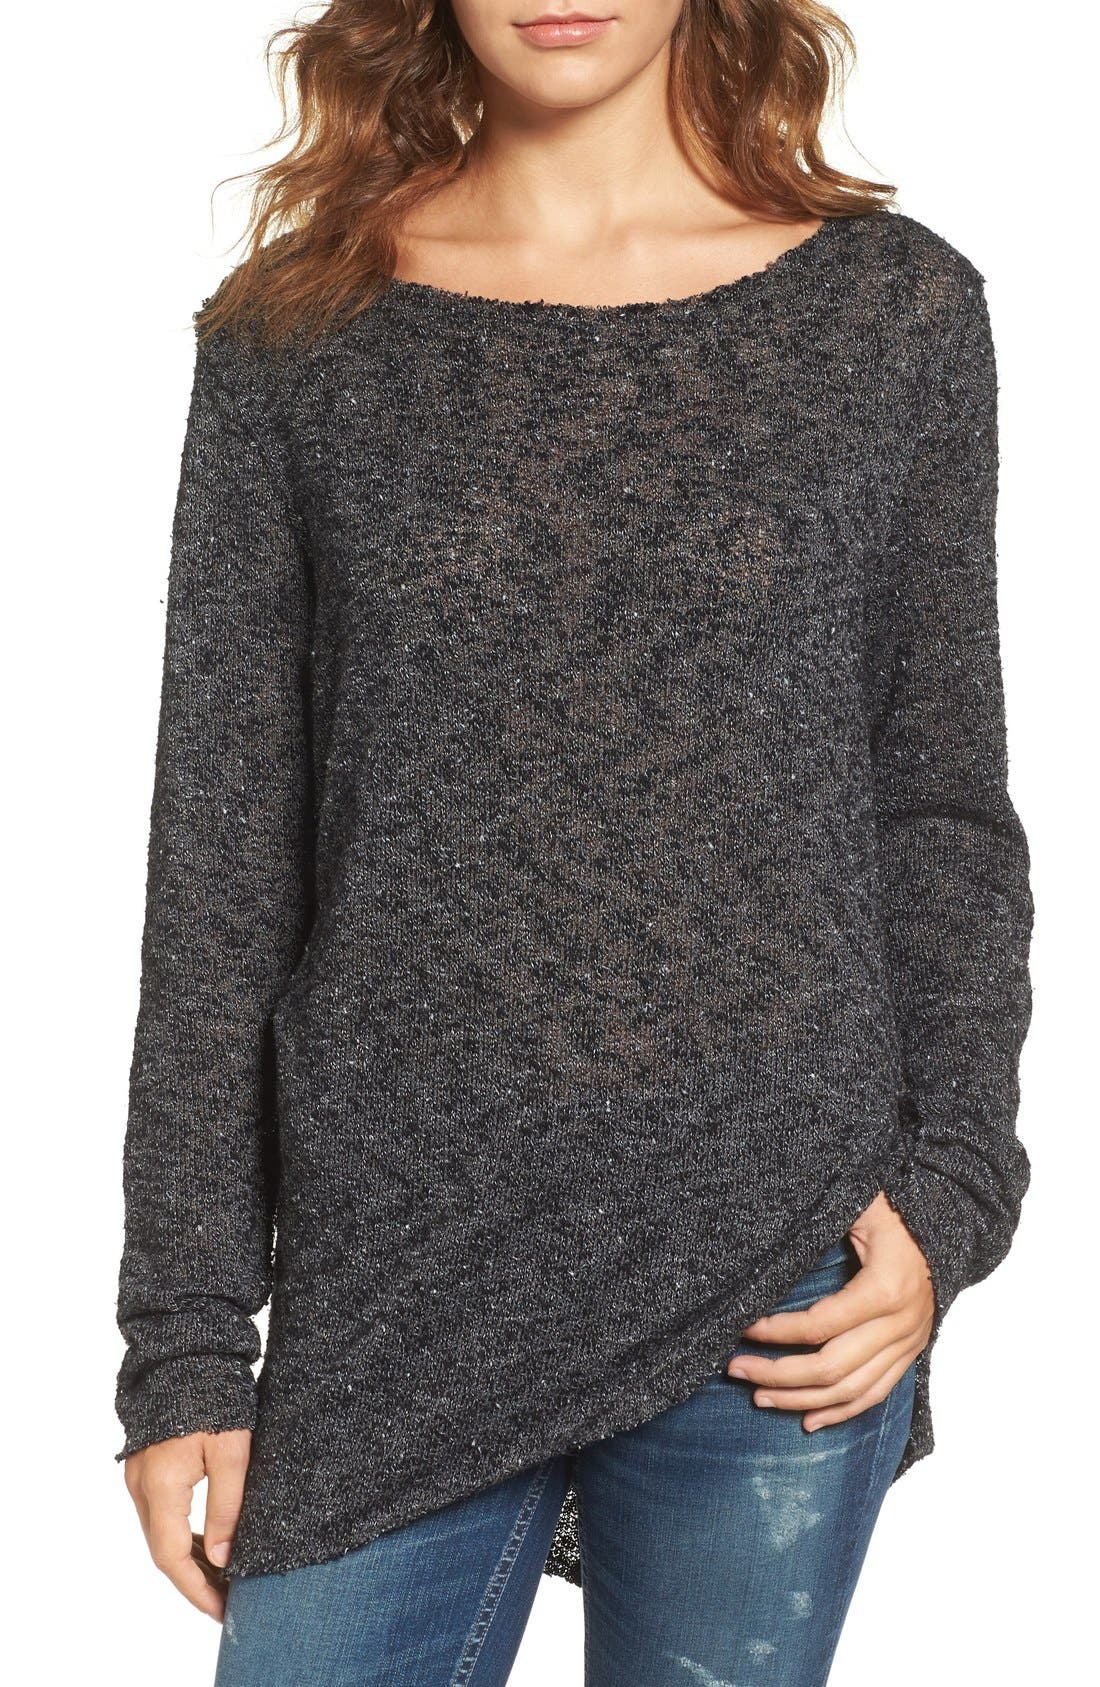 Main Image - Strom Carr Asymmetrical Tunic Sweater